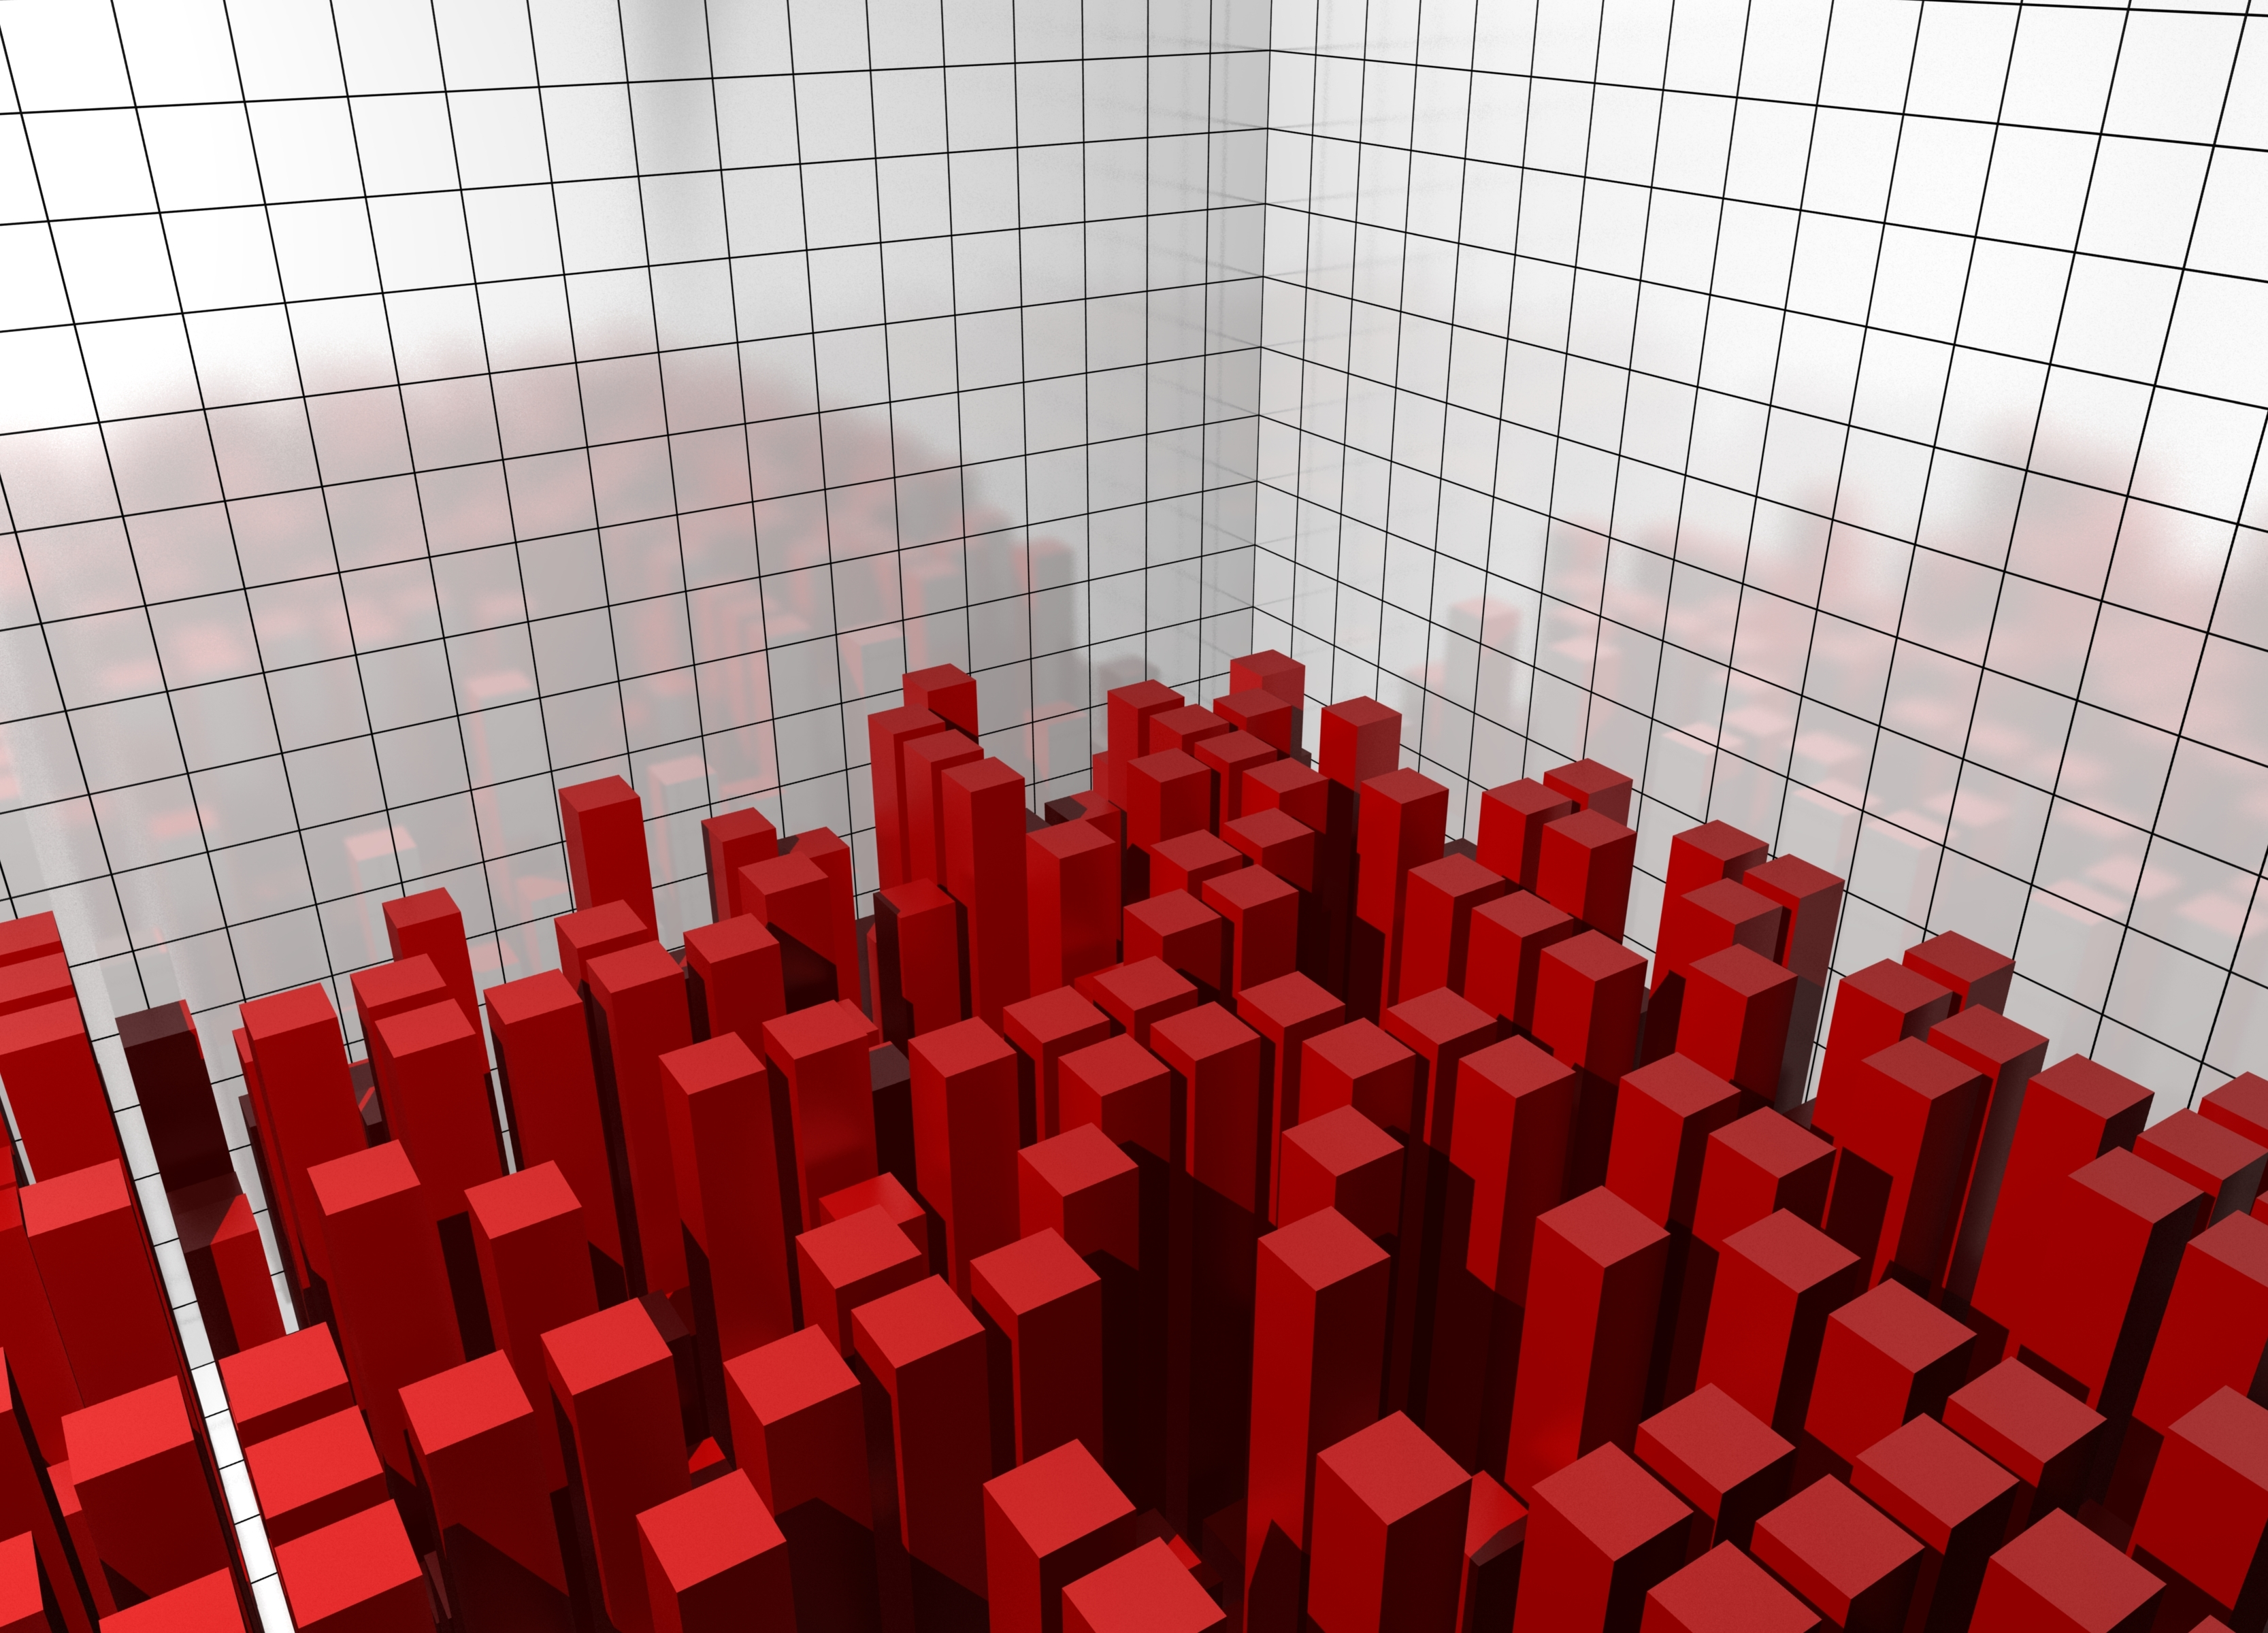 Red rectangles depicting a fitness landscape